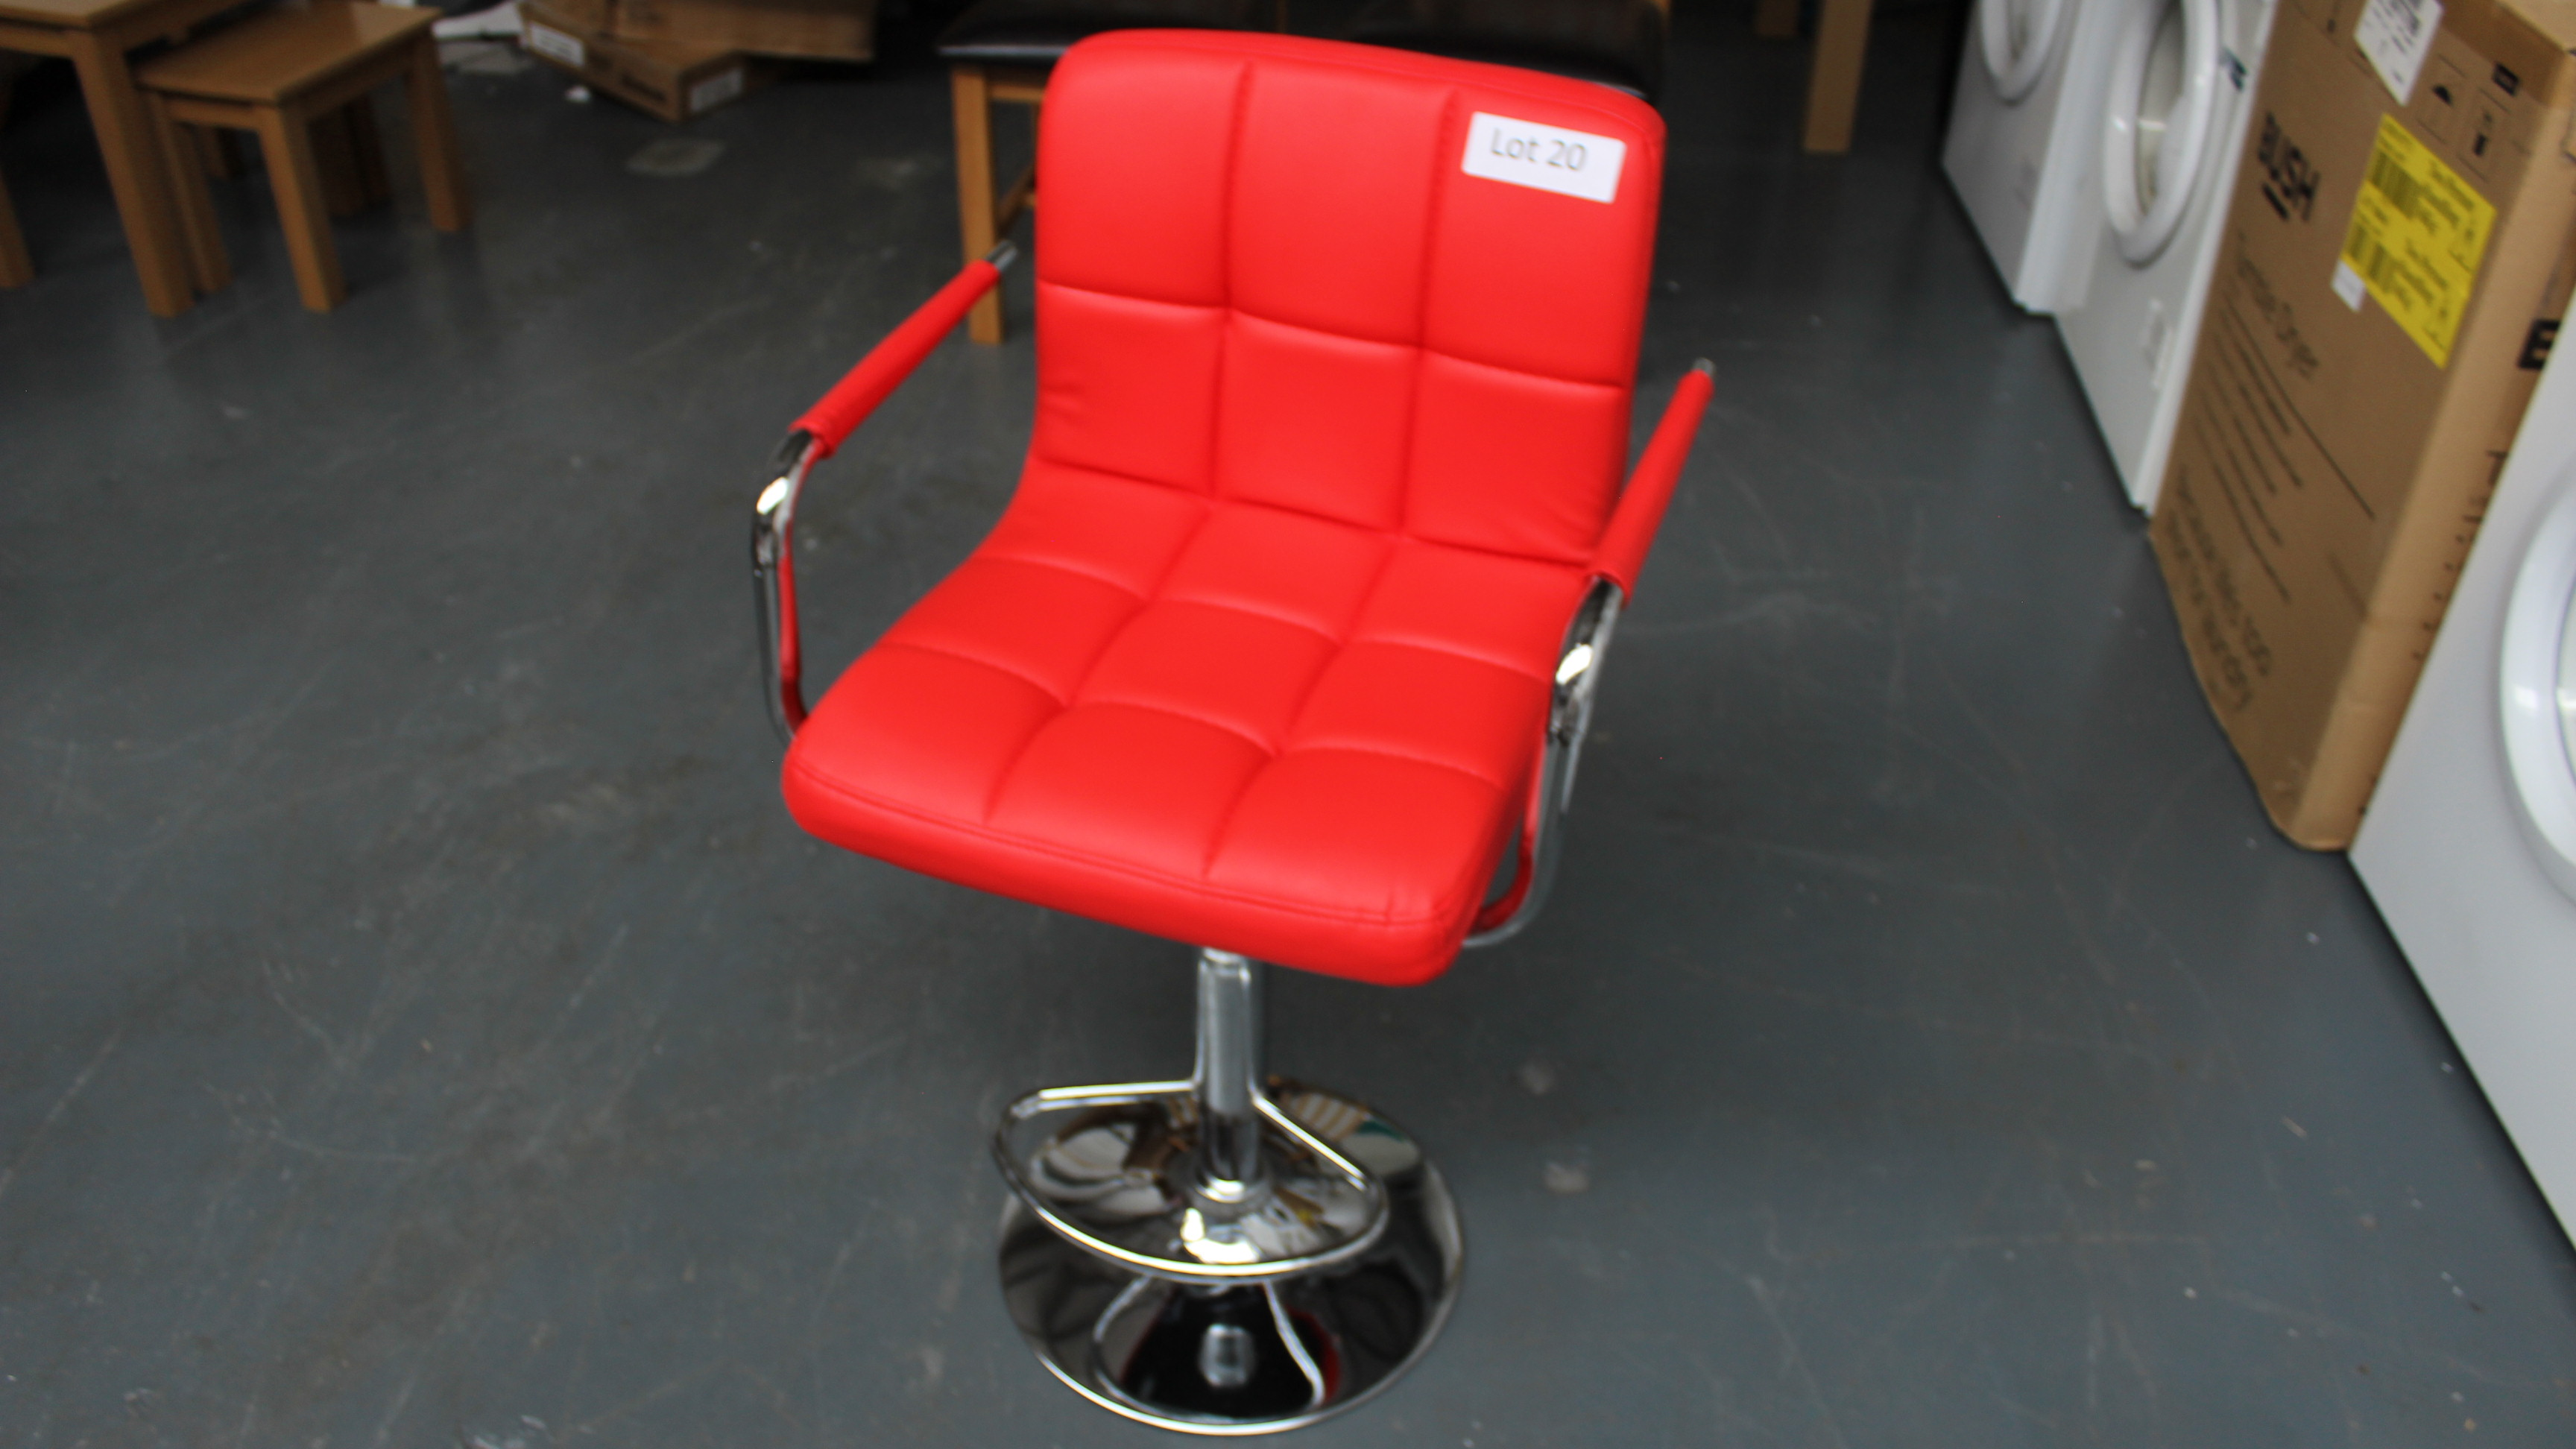 Lot 20 - Red Bar Stool. New